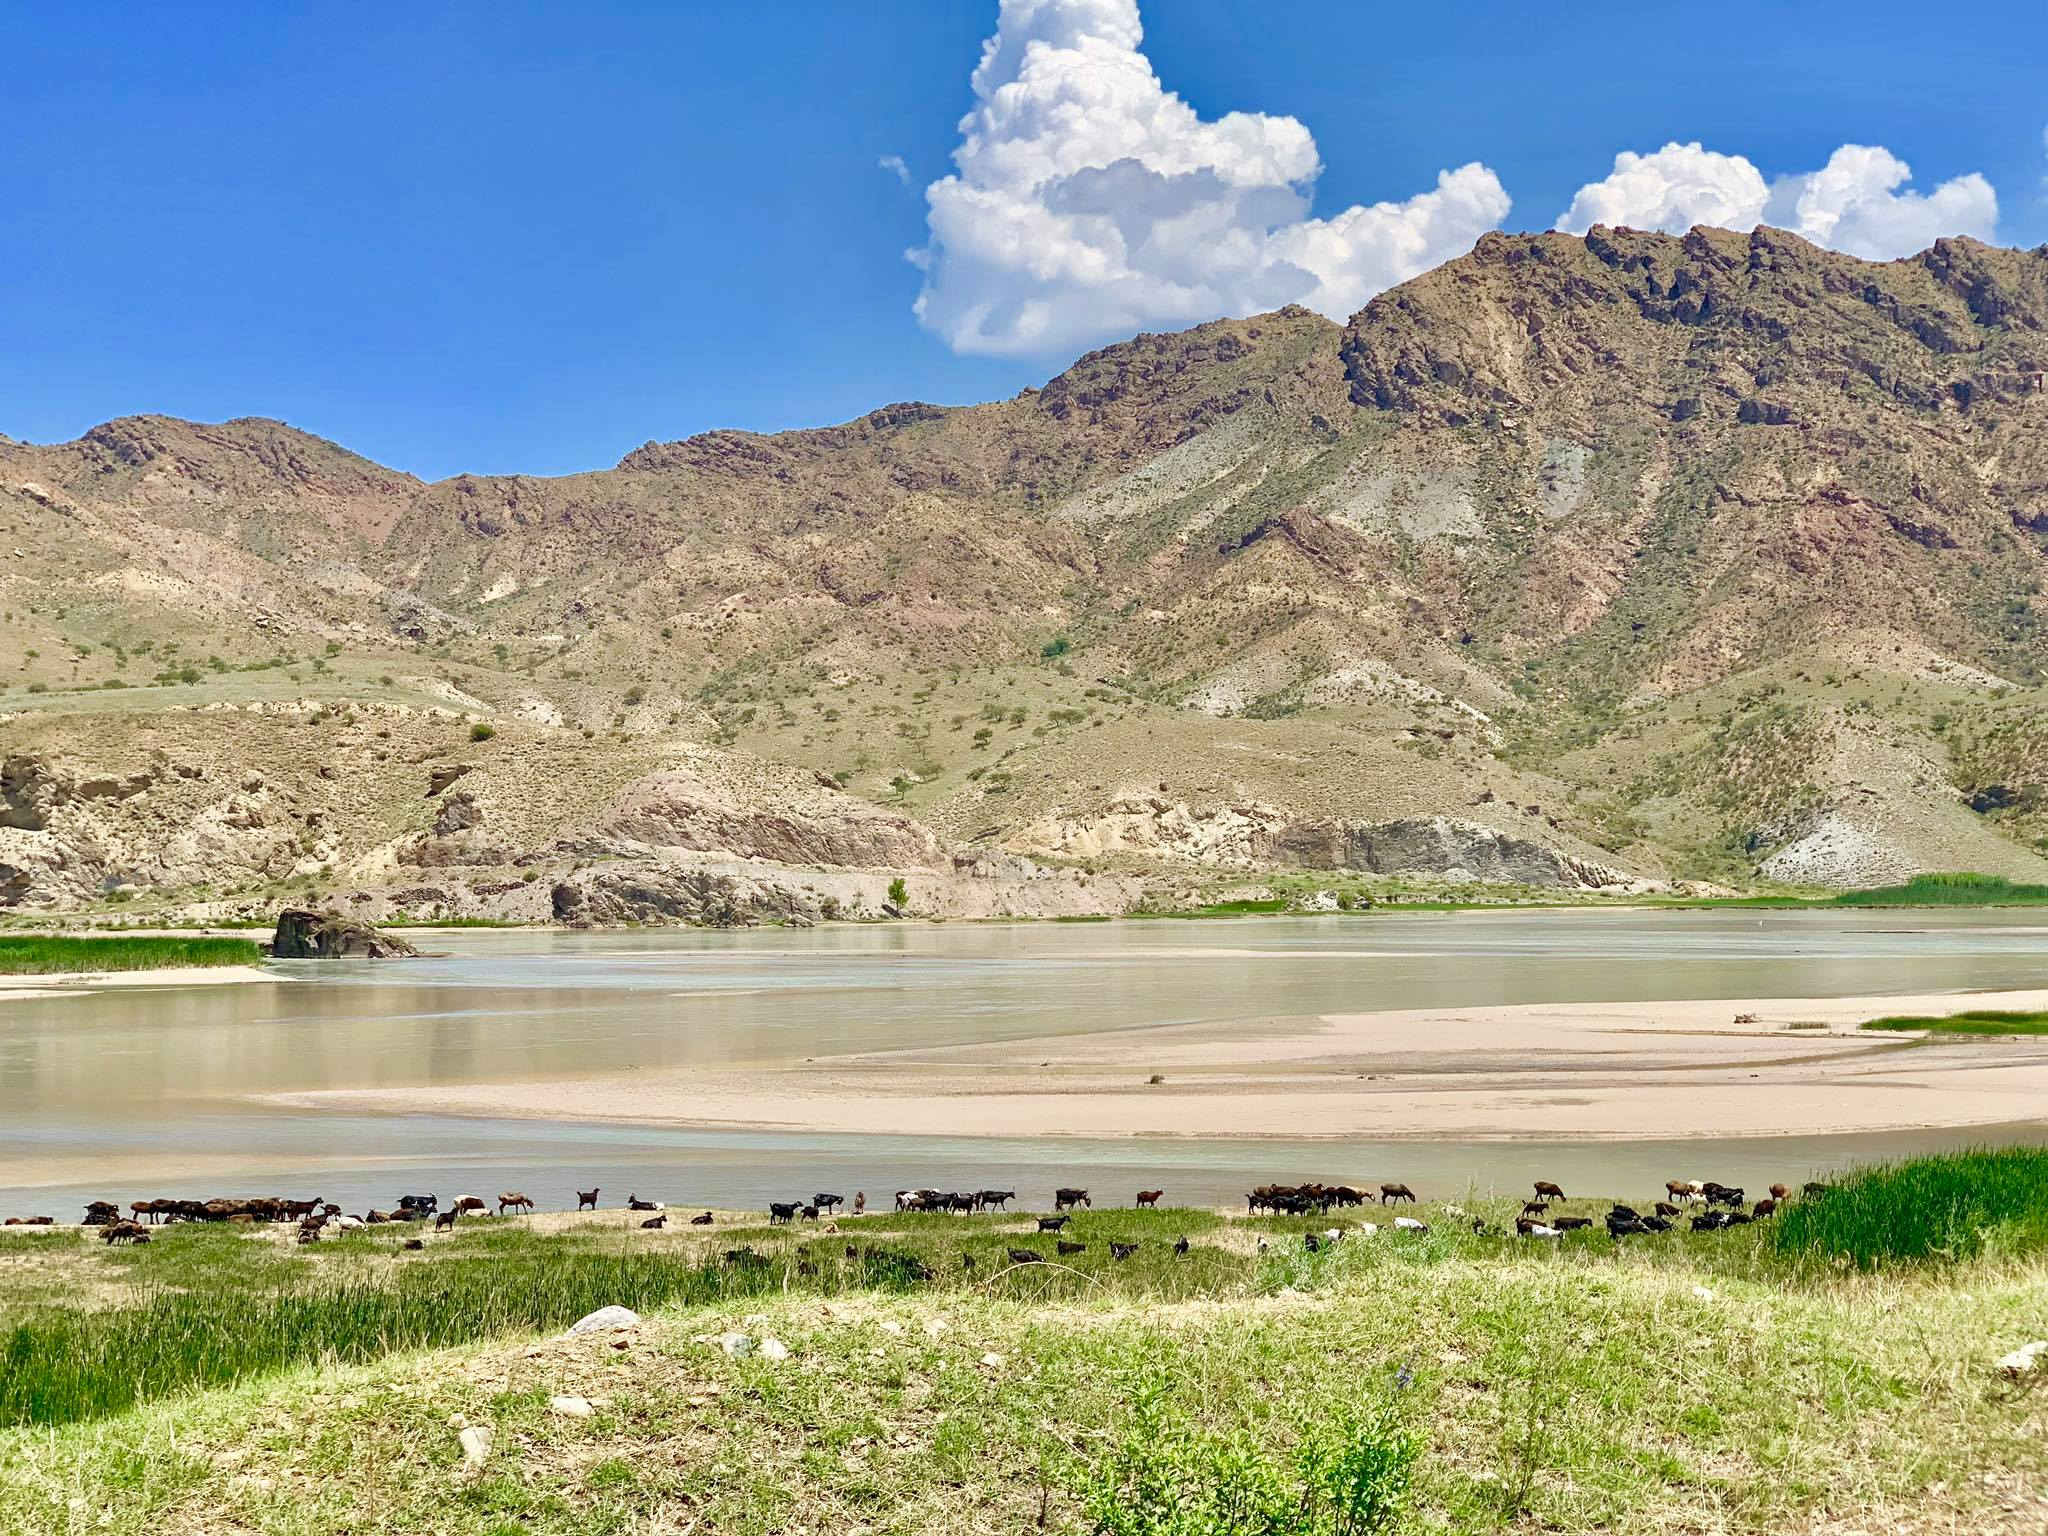 Kach Solo Travels in 2019 Roadtrip to Sary Chelek Lake which is 330 km. from Osh, Kyrgyzstan10.jpg